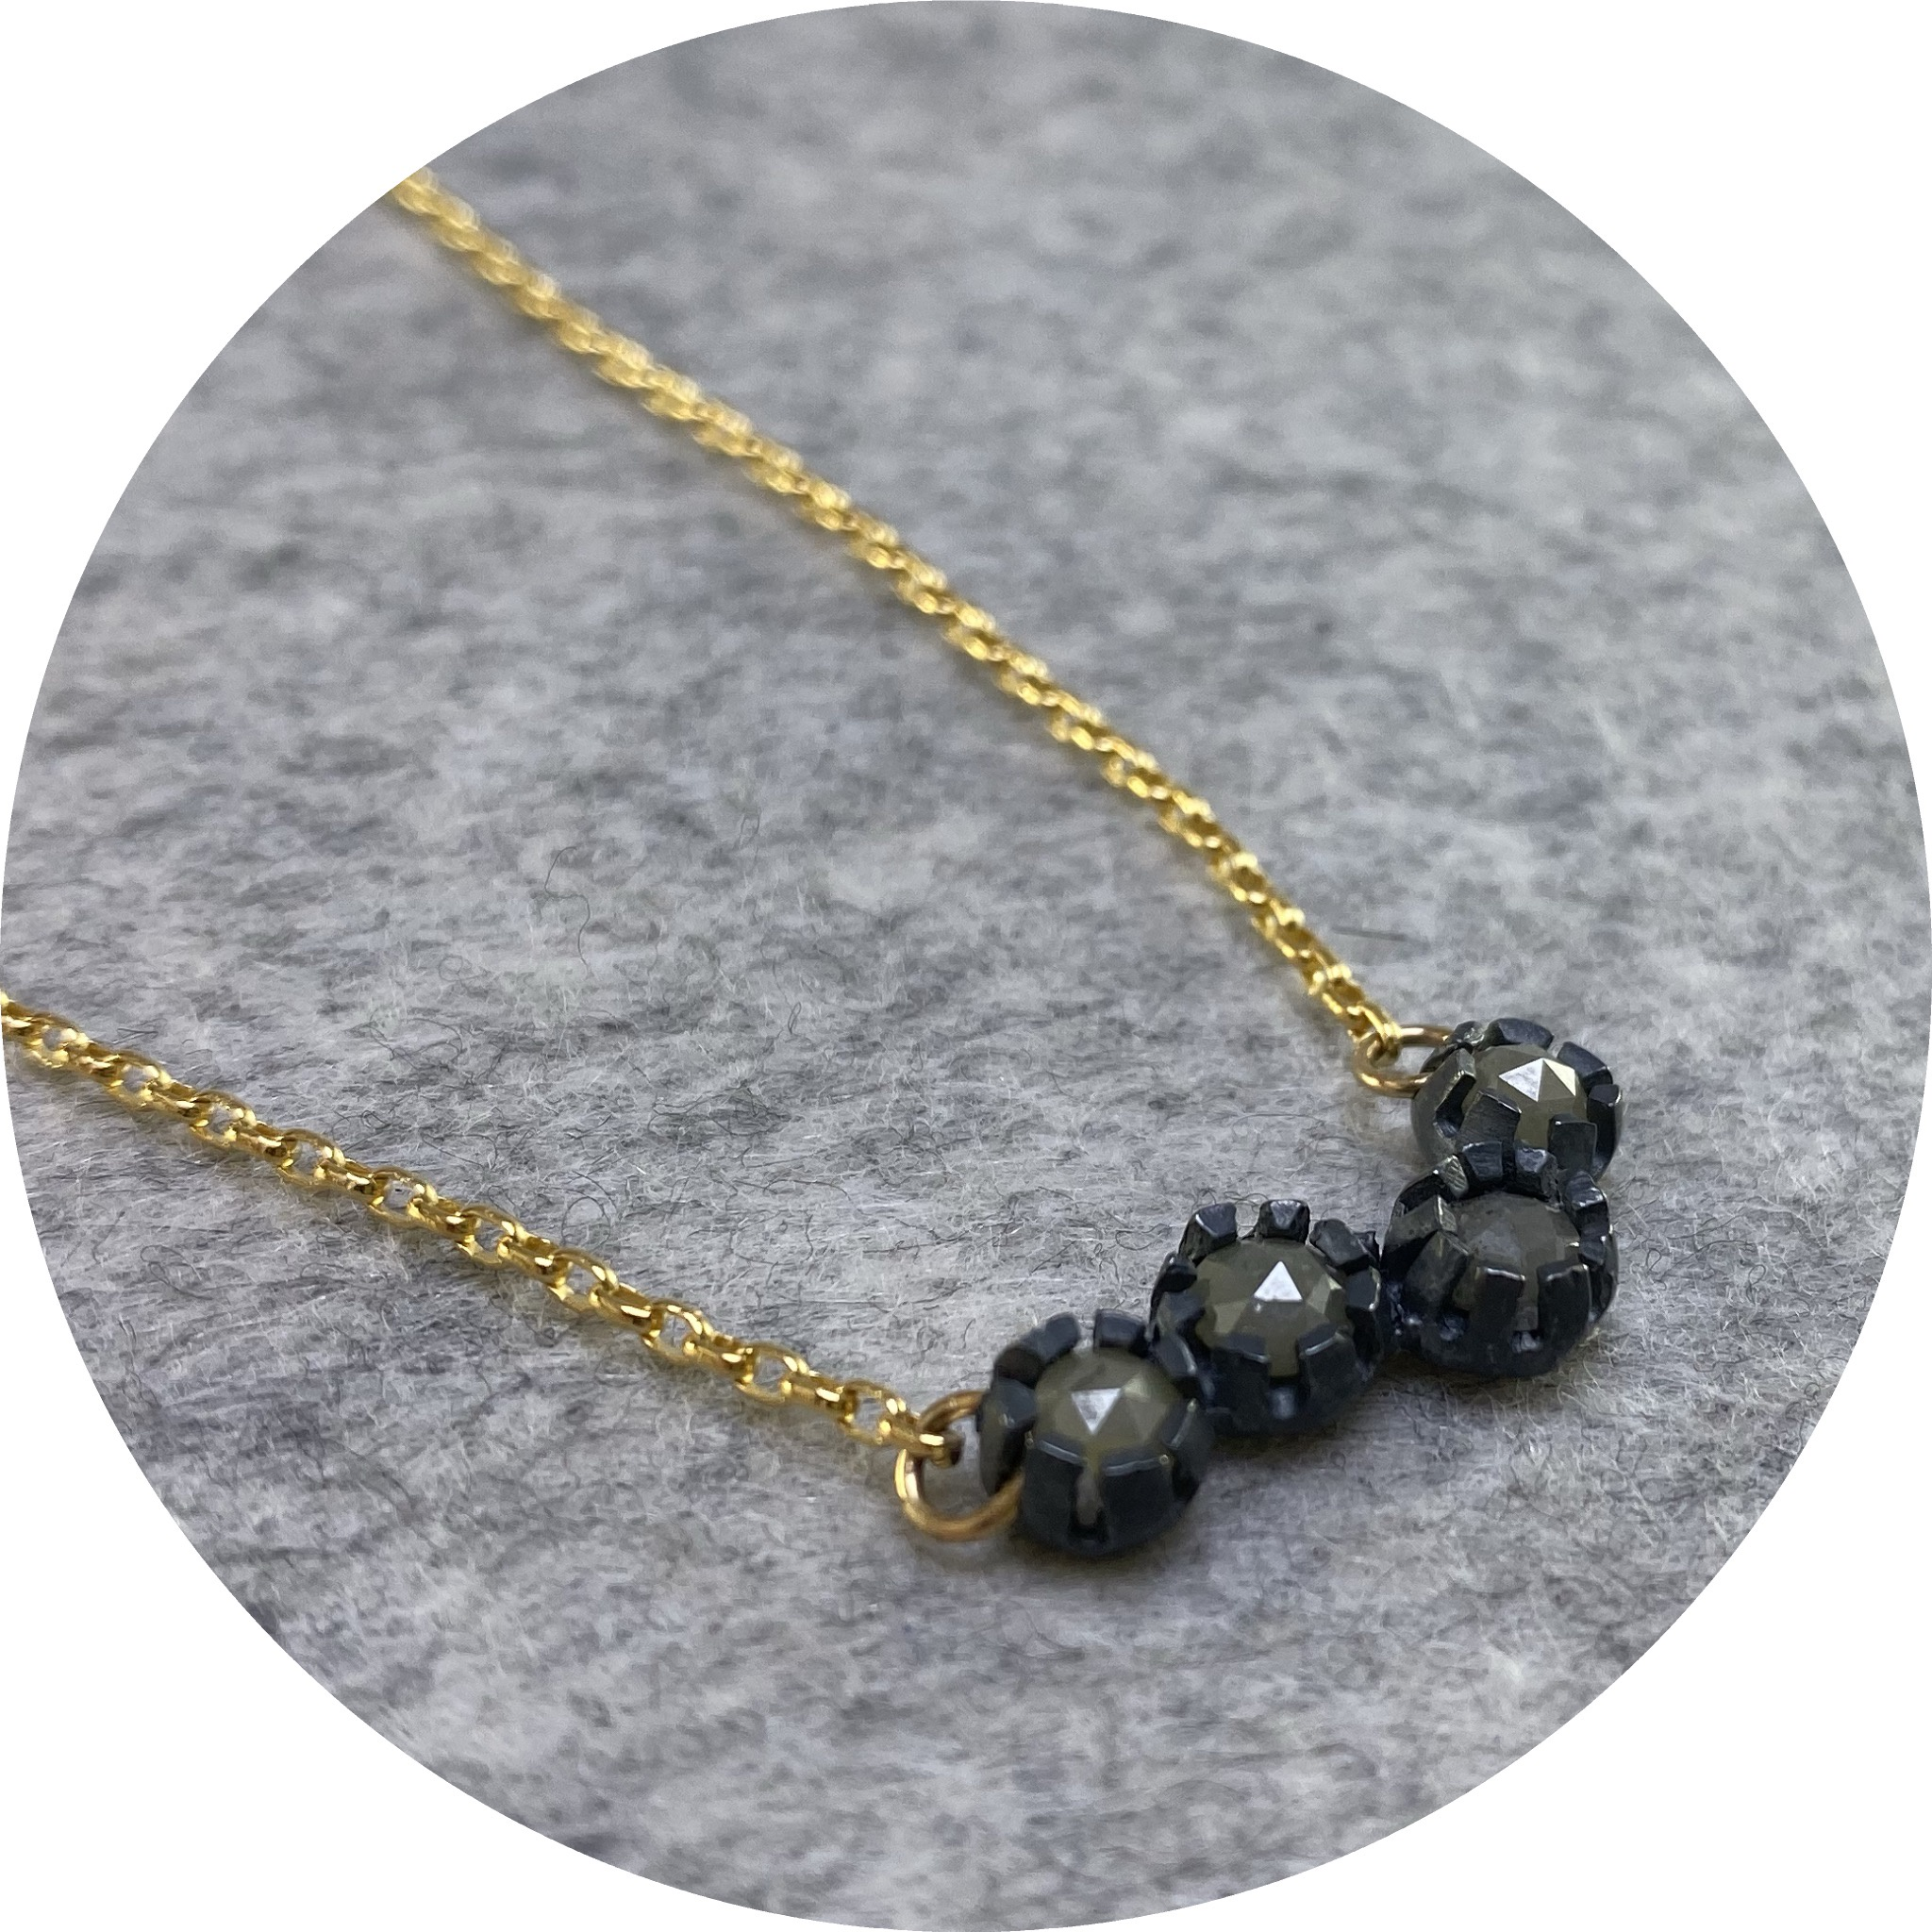 Katie Shanahan - 4 Rose Cut Diamonds in Oxidised Sterling Silver and 9 Ct Yellow Gold Chain